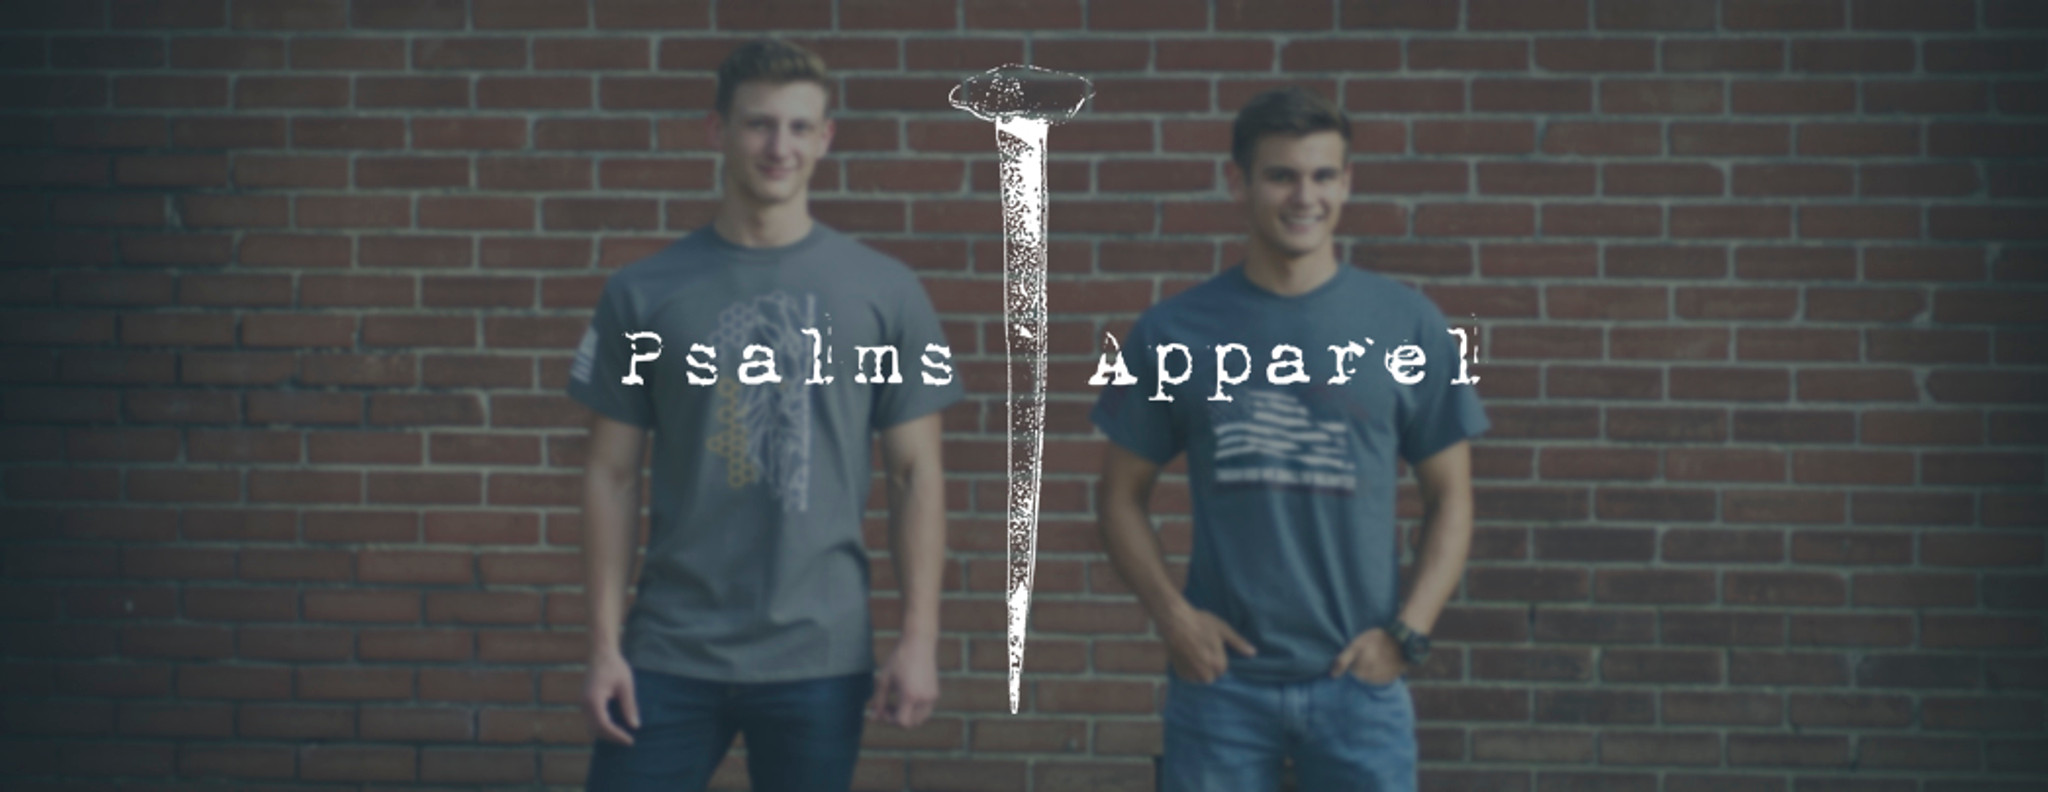 Psalms Apparel